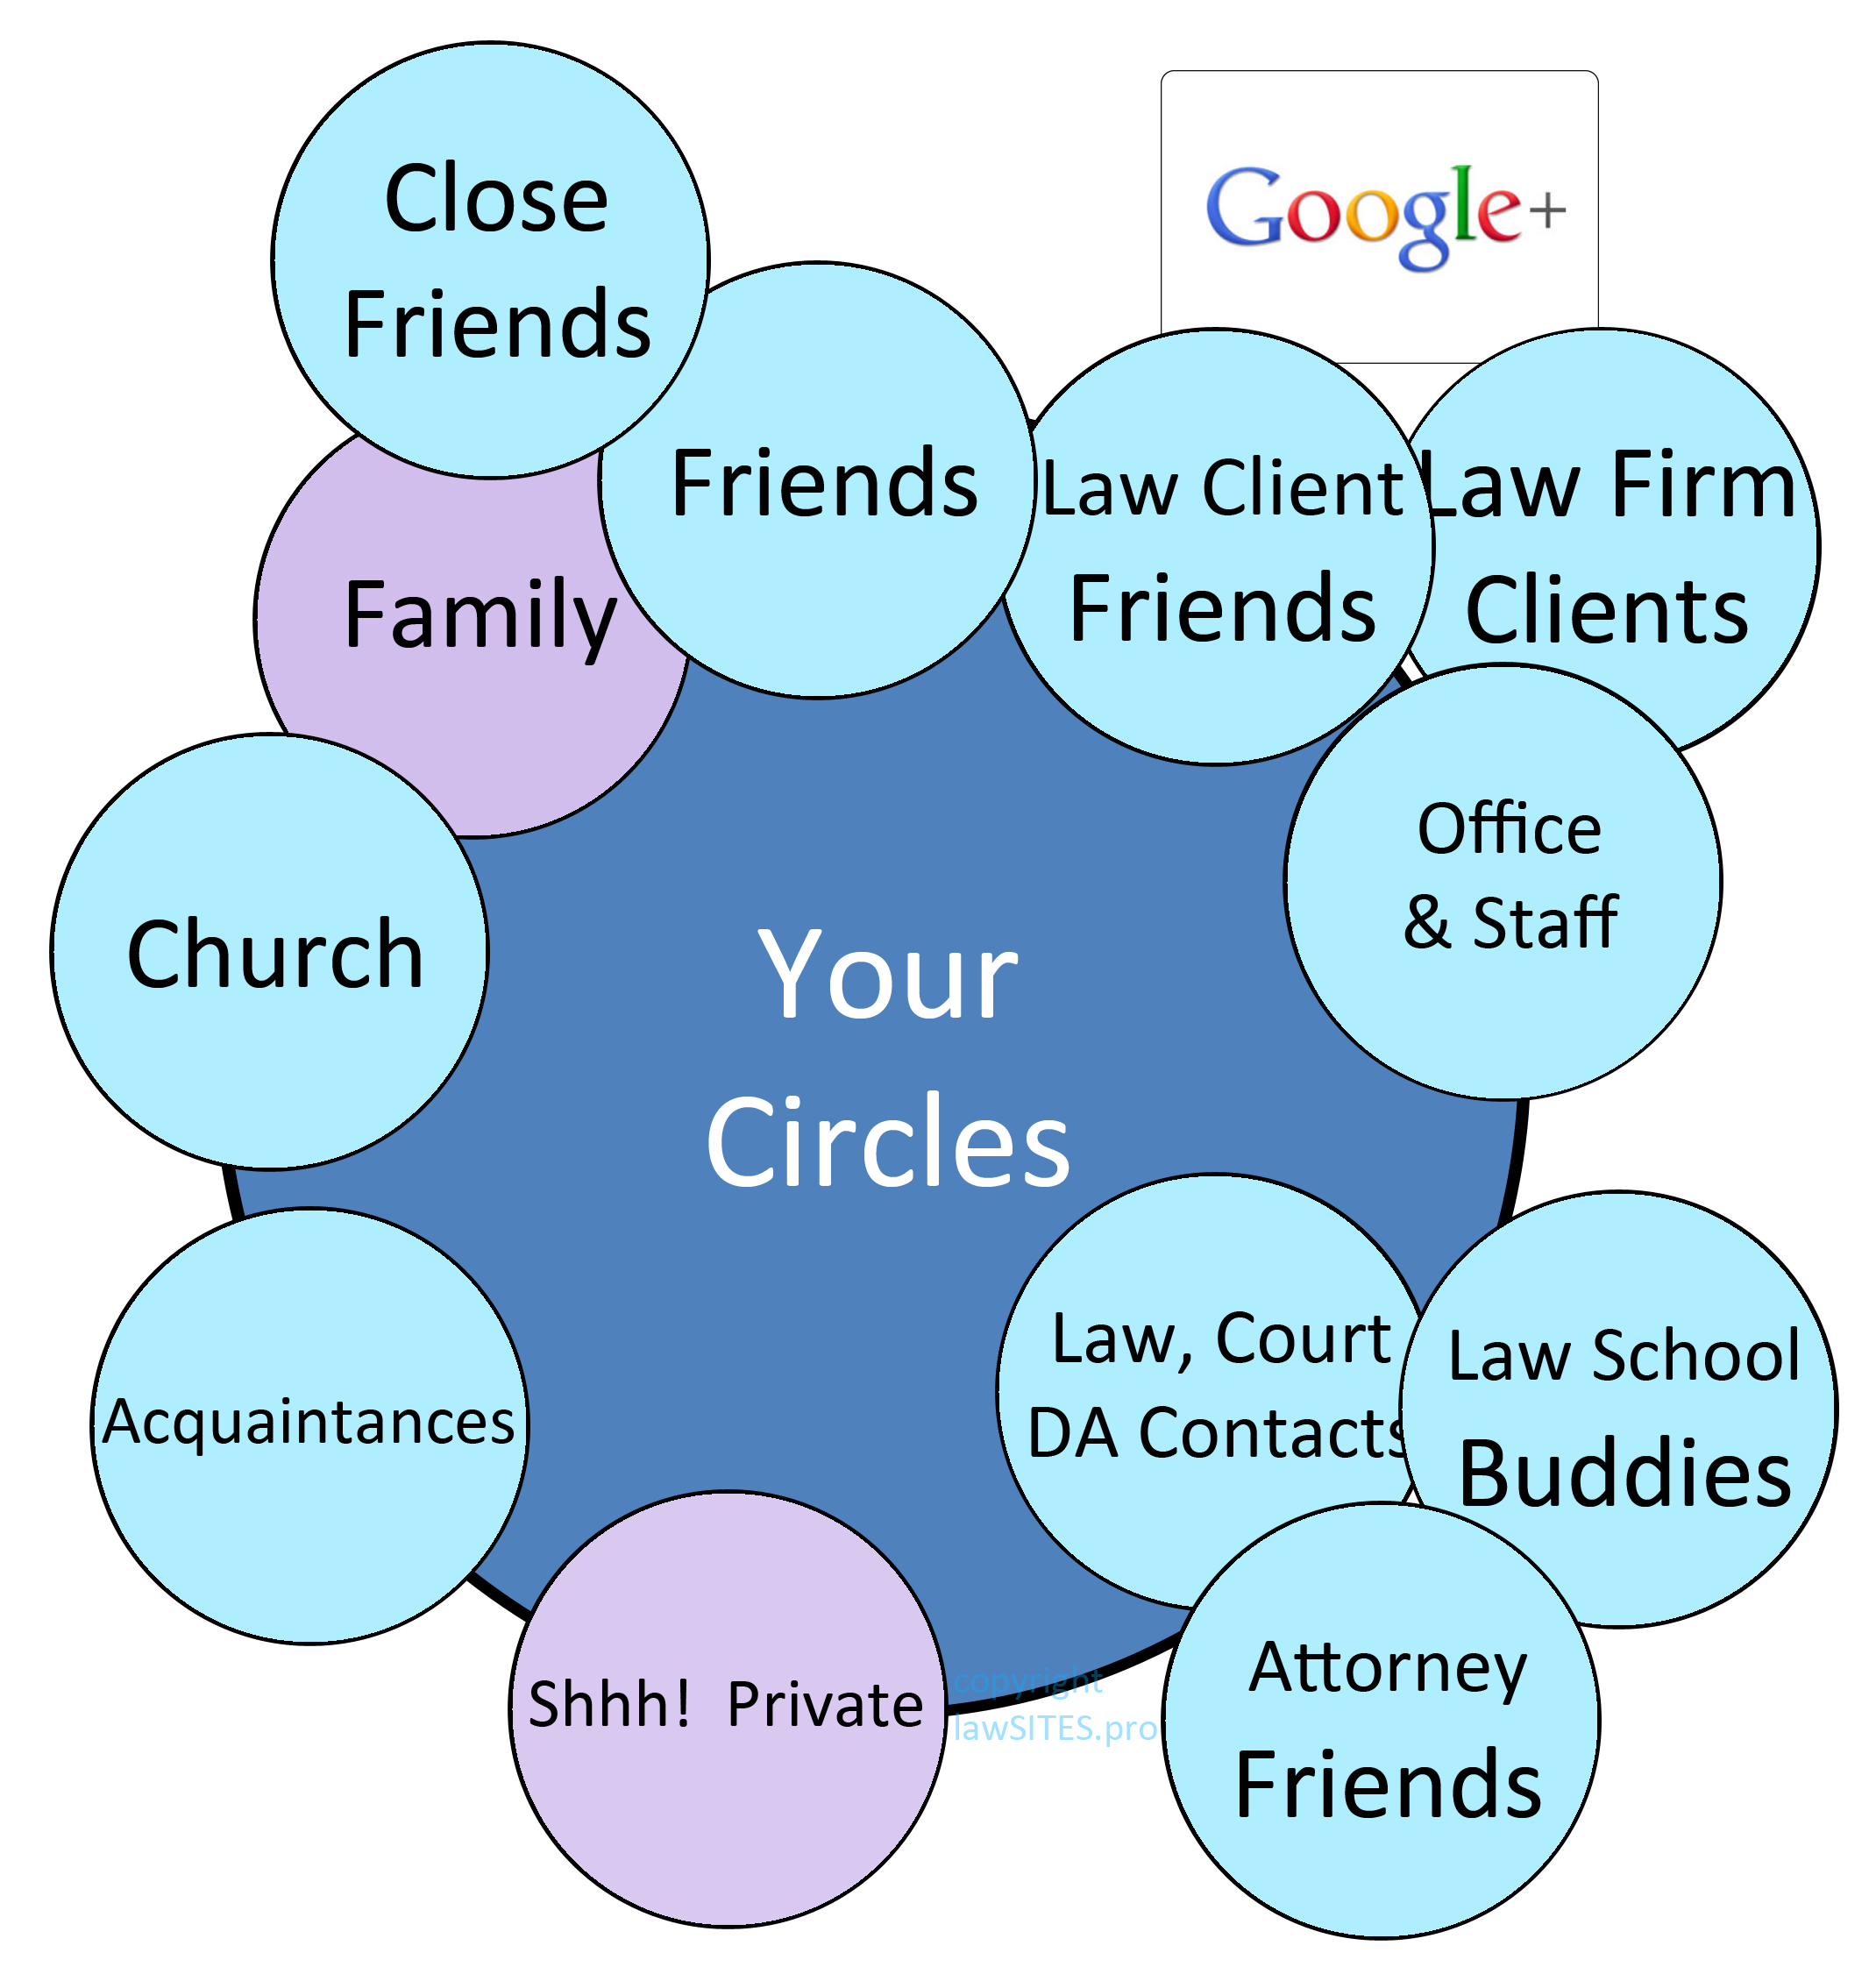 Google wants you define yourself and your business using Google Plus Circles